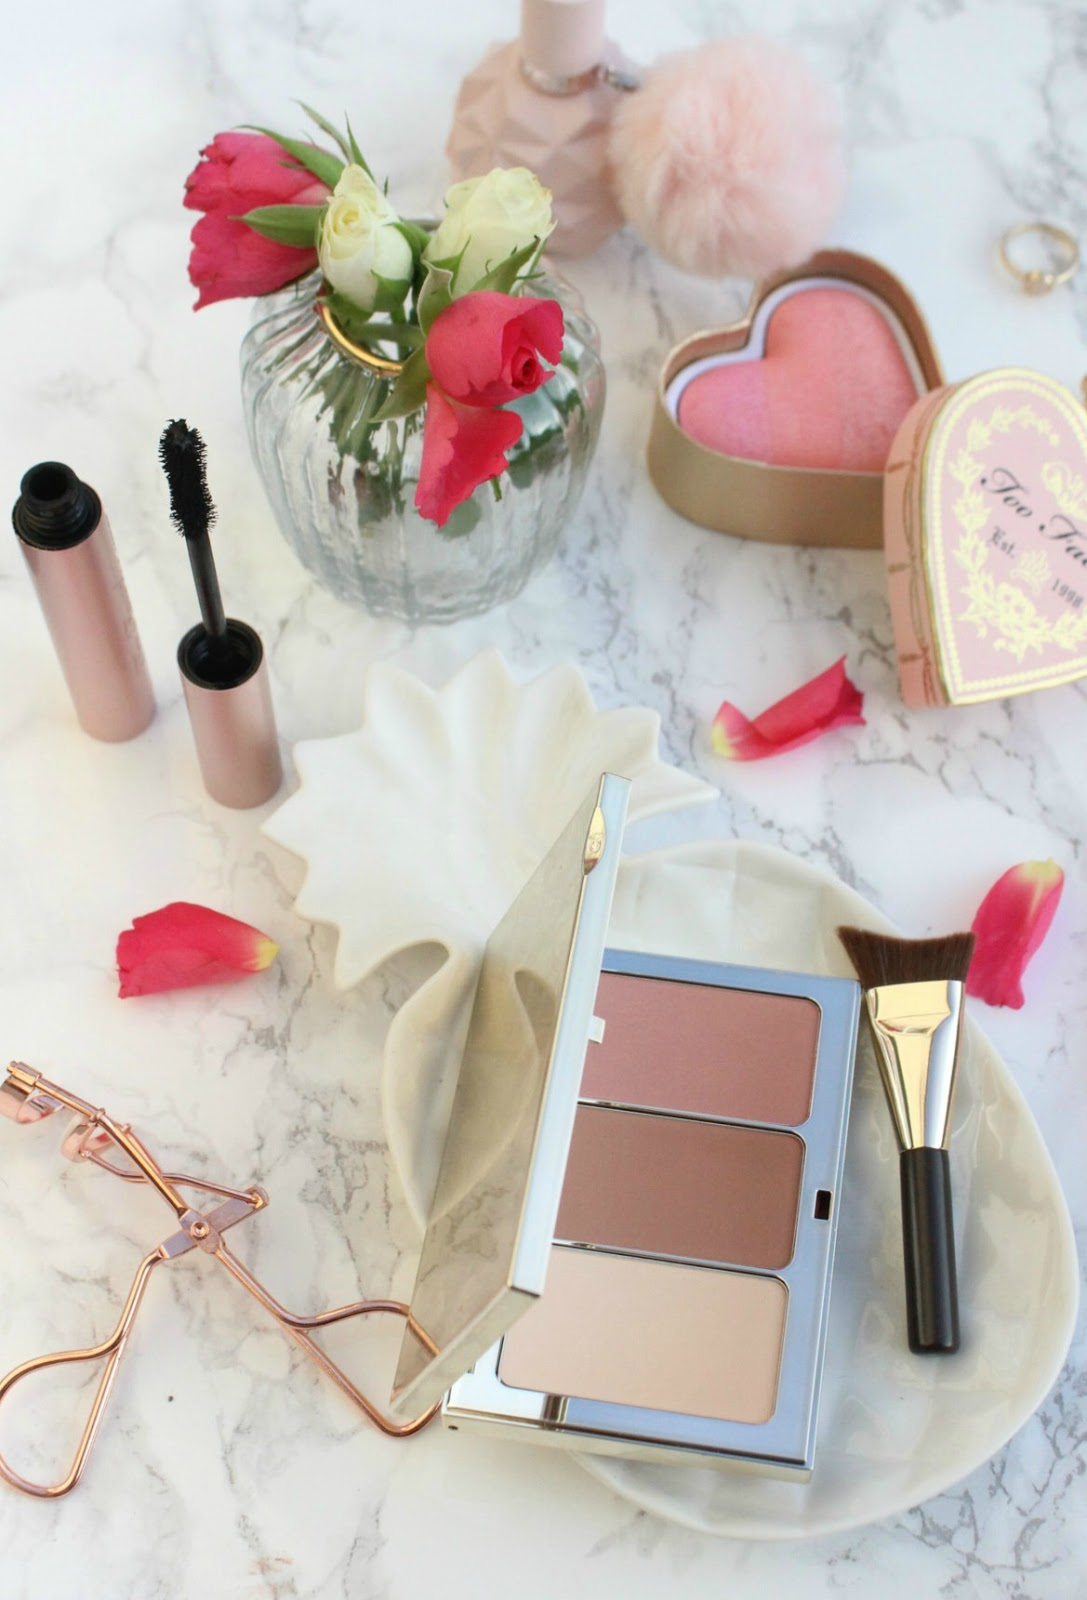 Clarins Face Contouring Palette - Better Late Than Never